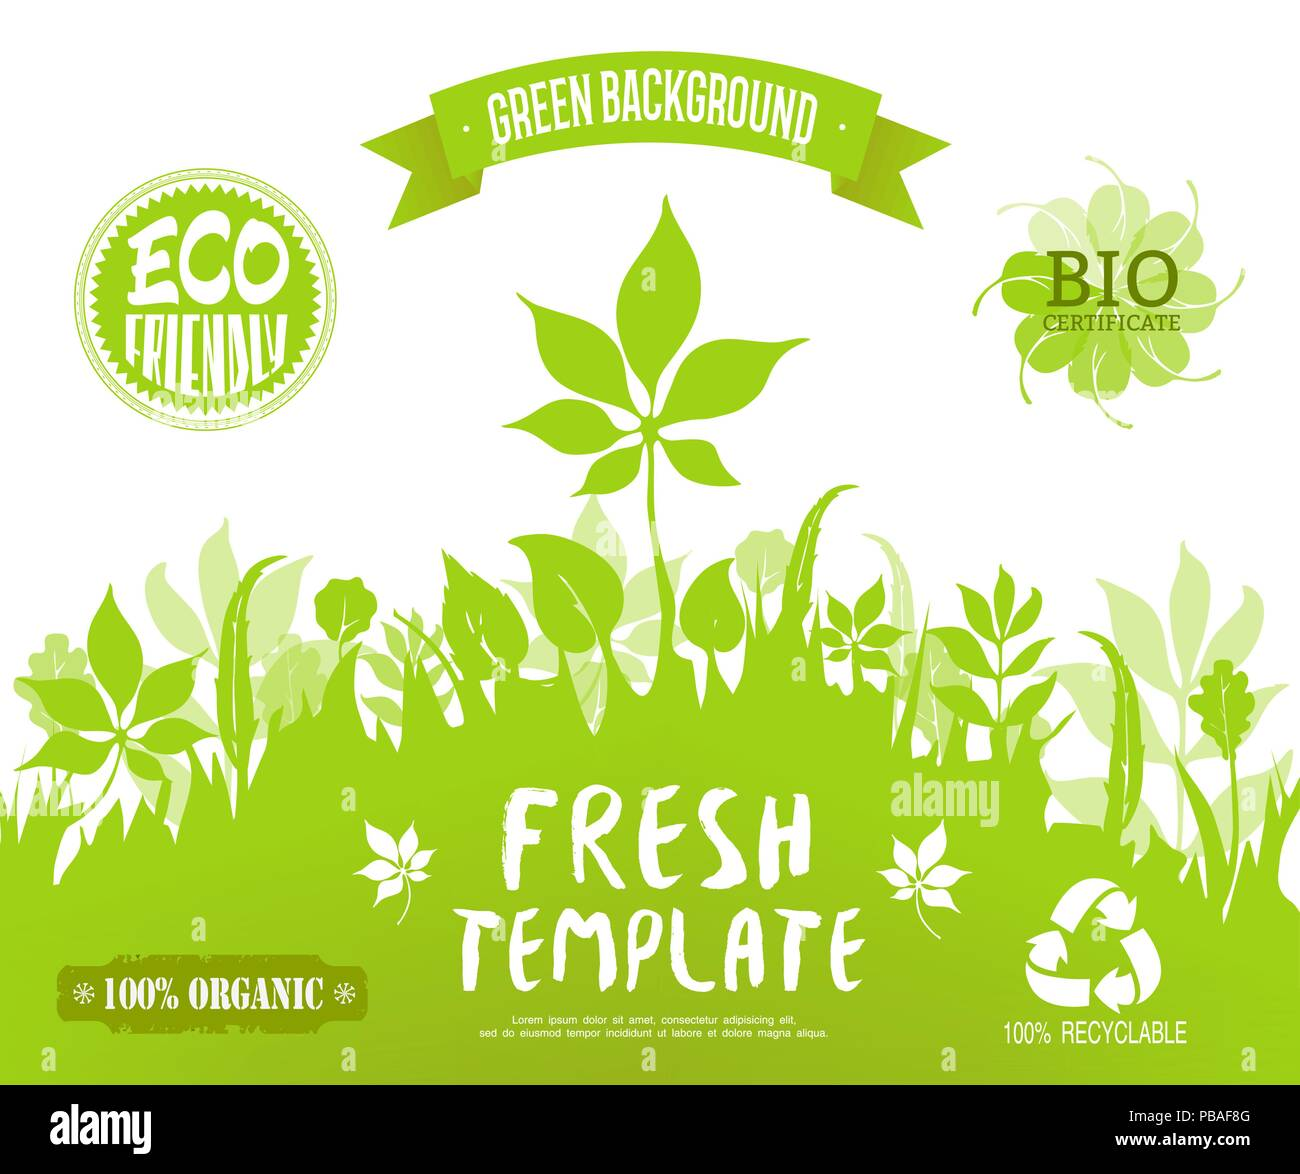 100 Organic Eco Friendly Bio Certificate Recyclable Labelseen